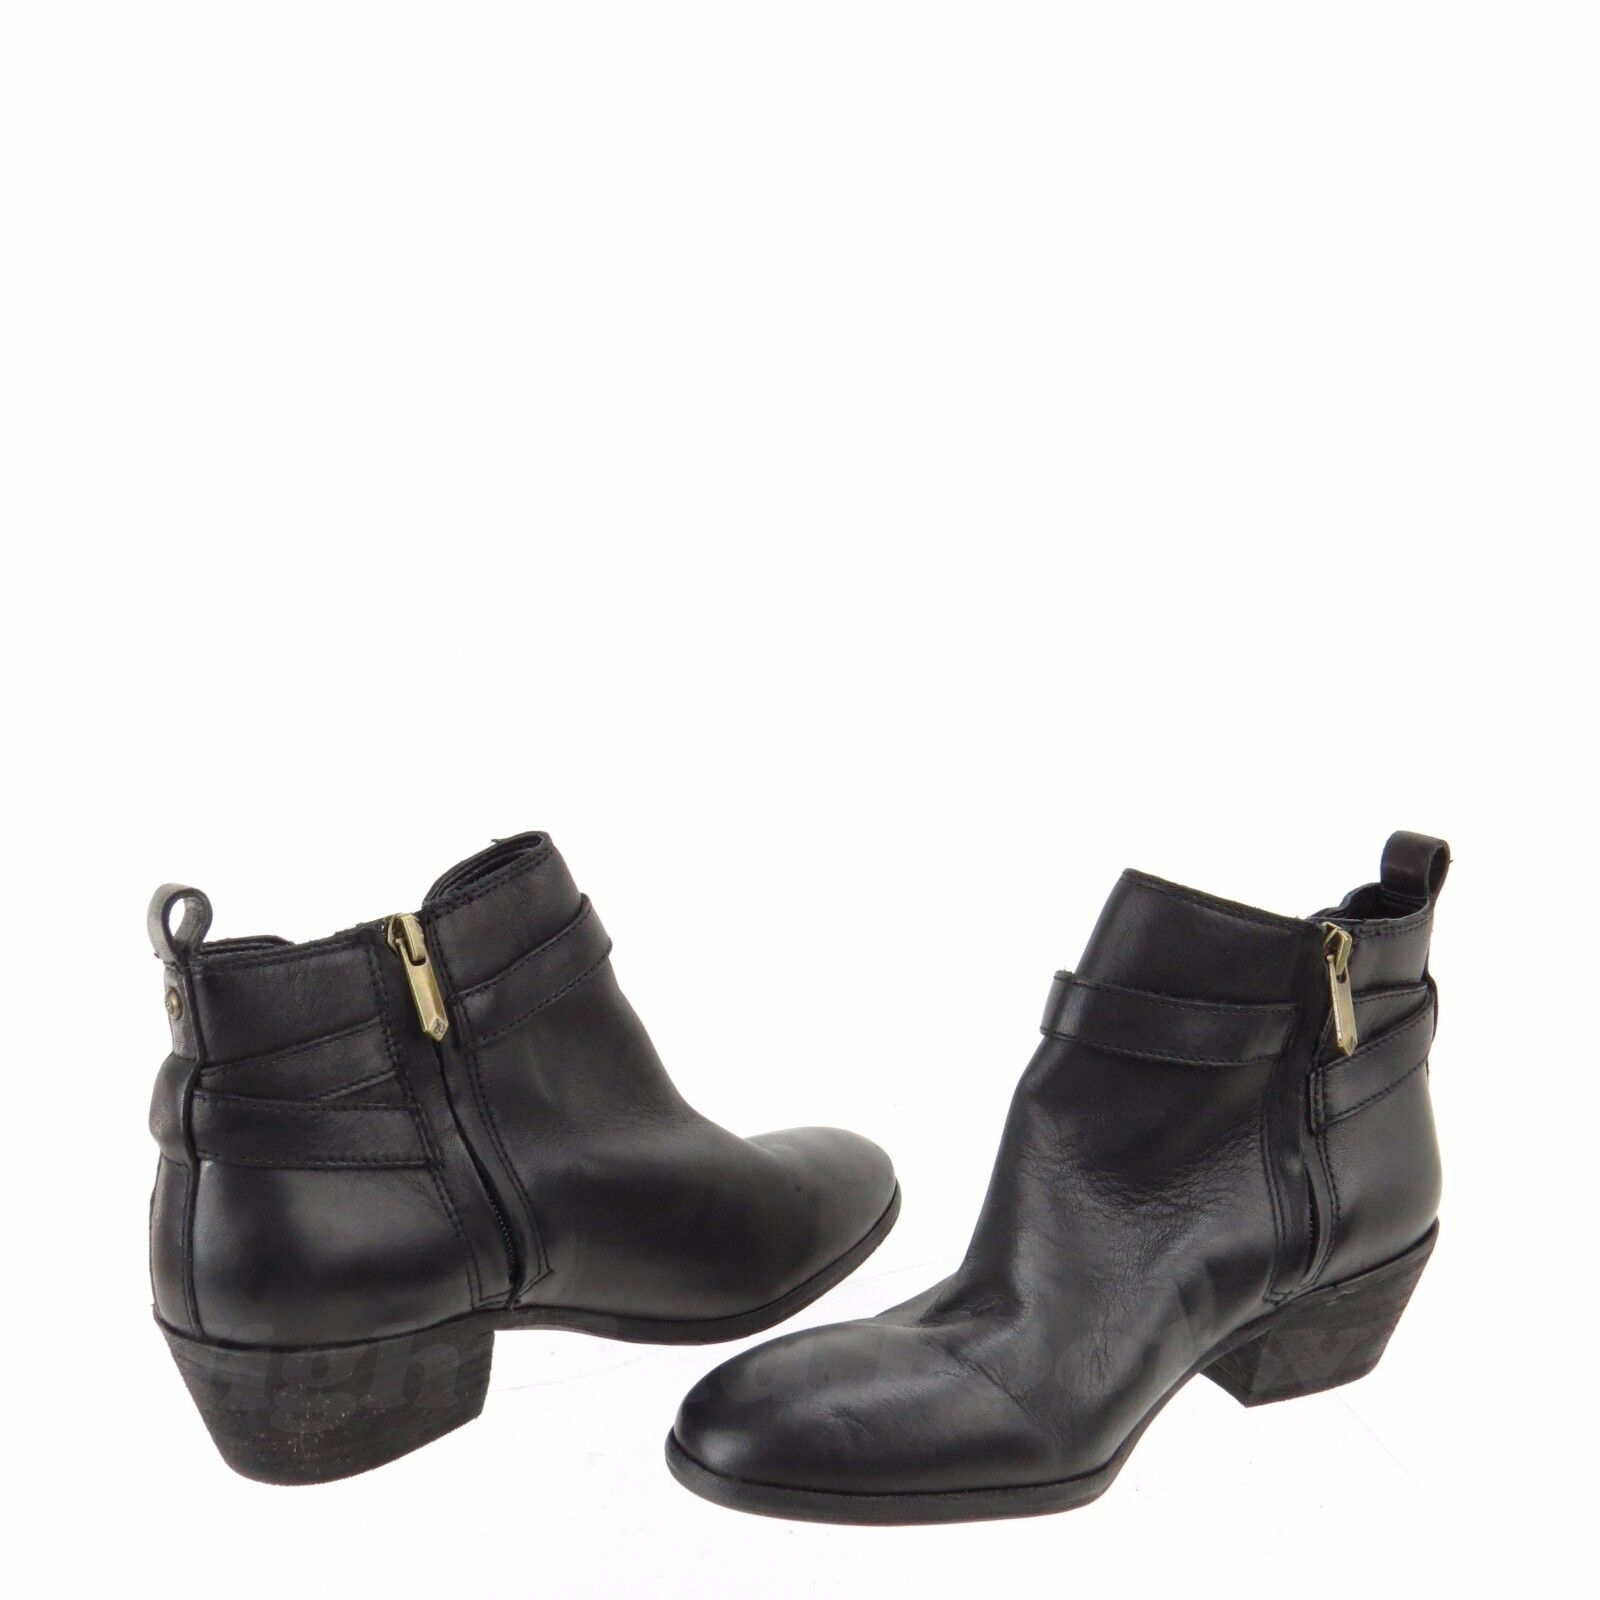 Sam Edelman Pacific Women's shoes shoes shoes Black Leather Strap Ankle Boots Size 7 W NEW 6b9ec0